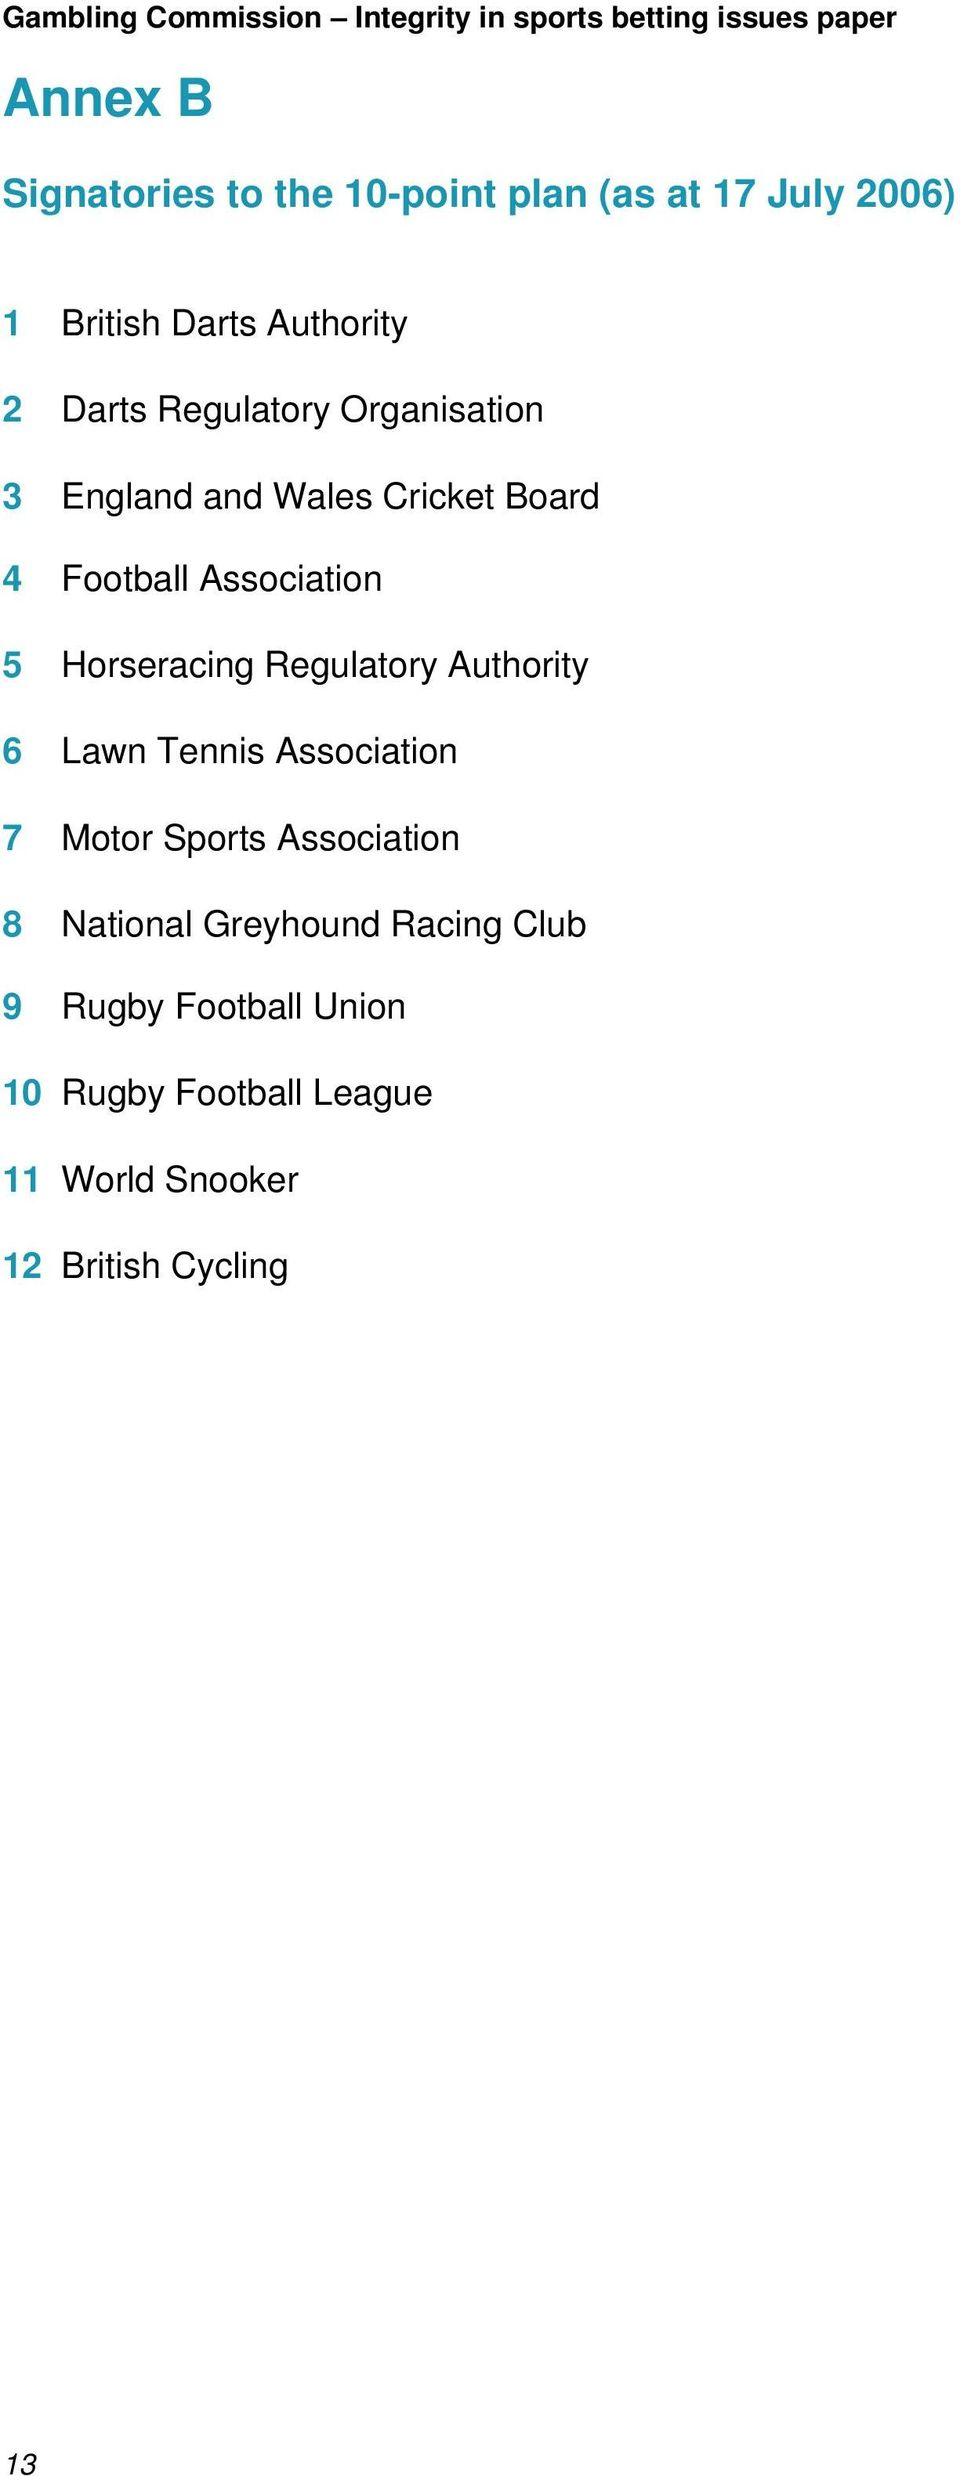 Regulatory Authority 6 Lawn Tennis Association 7 Motor Sports Association 8 National Greyhound